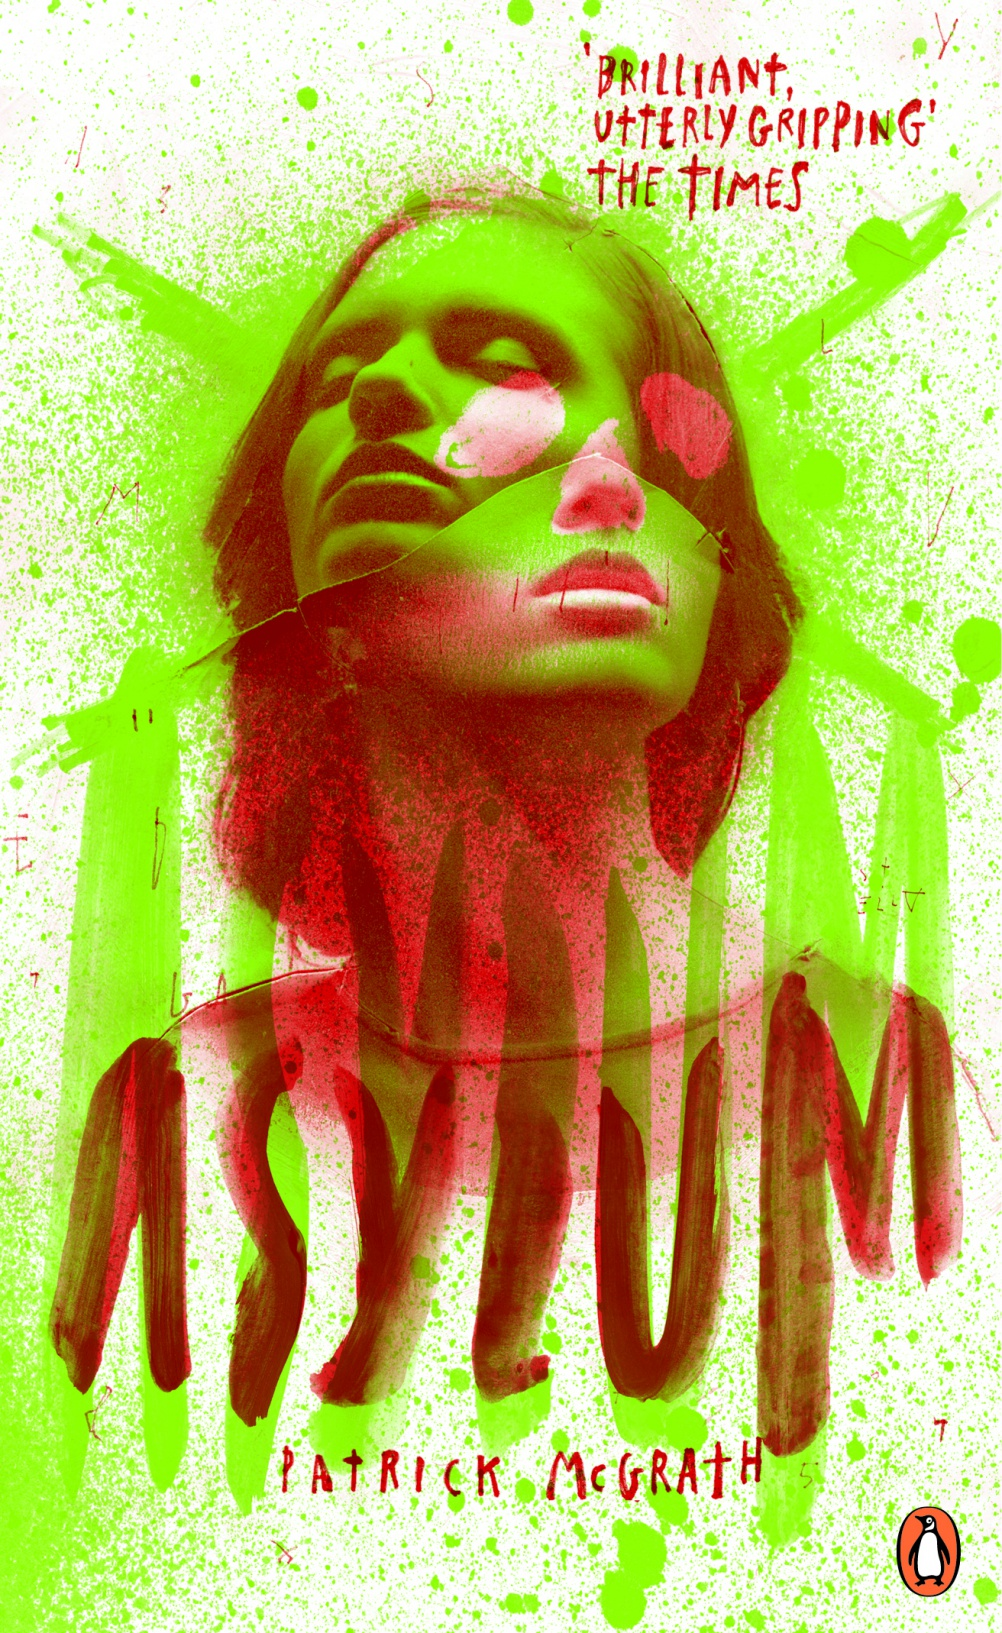 Asylum by Patrick McGrath. Cover by Attak